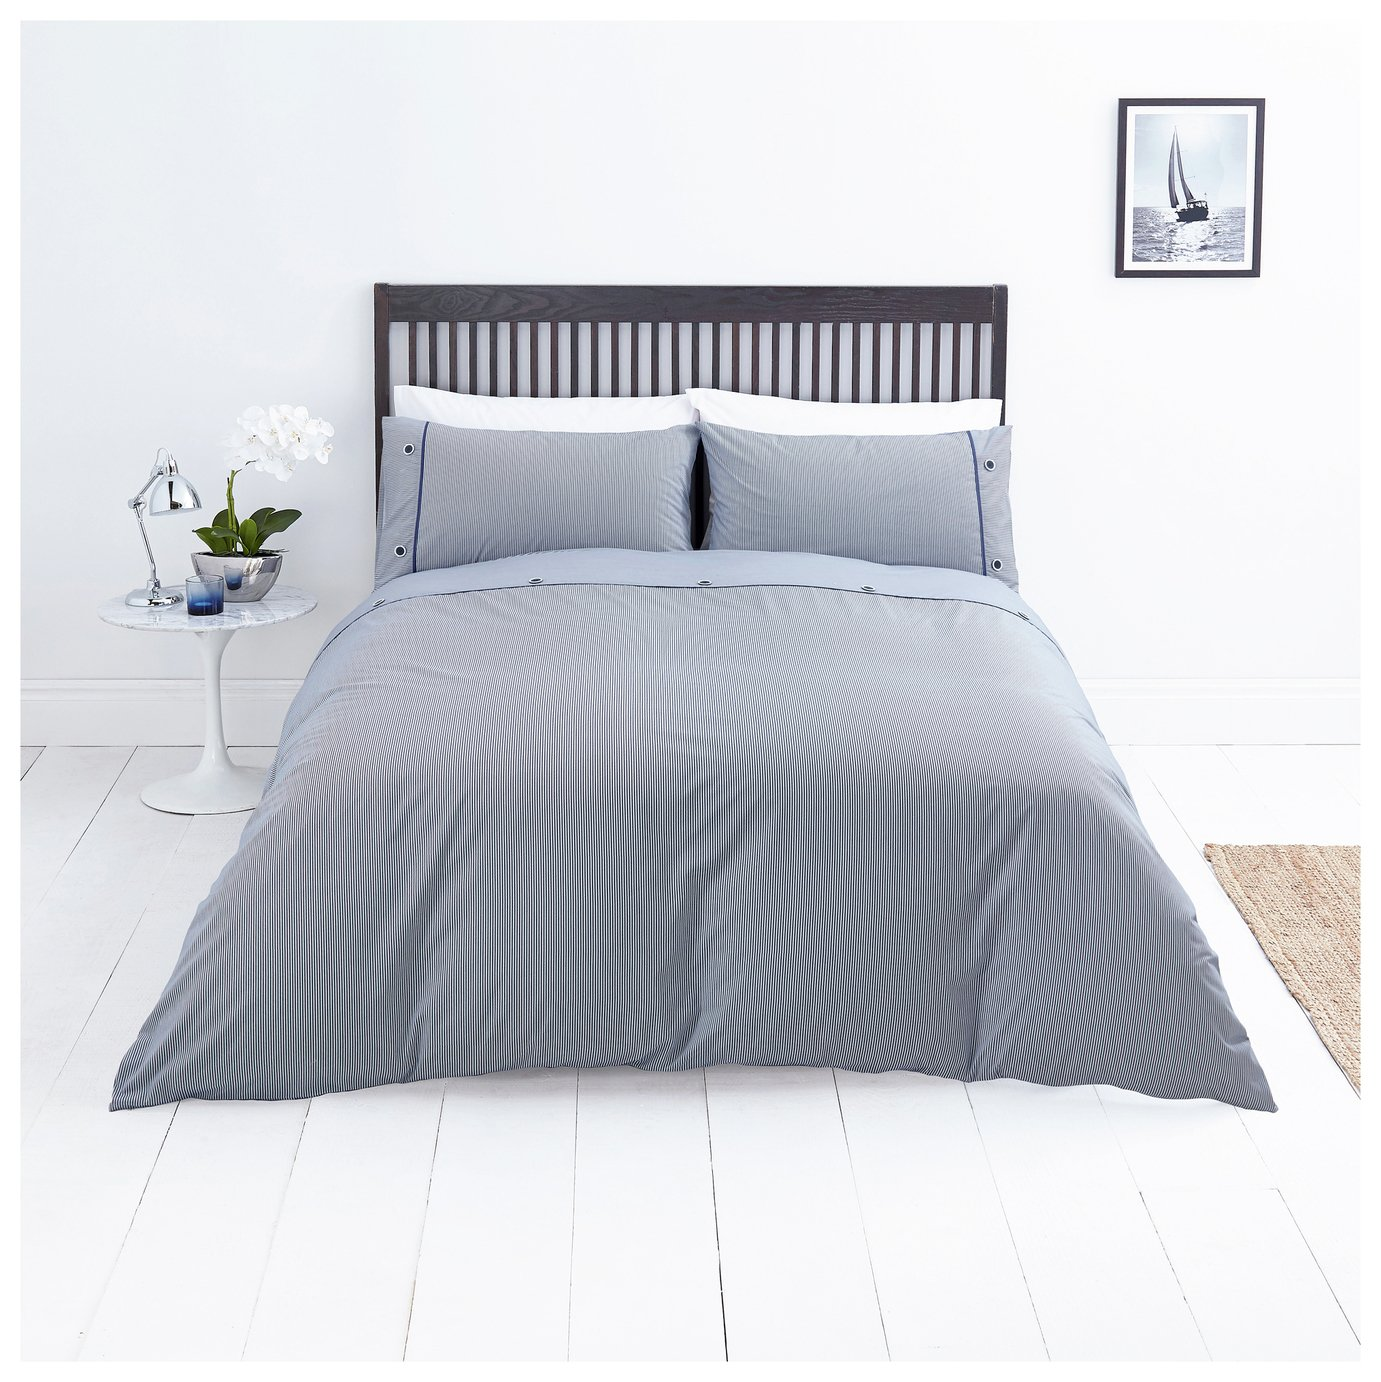 Sainsbury's Home Riviera Stripe Bedding Set - Single